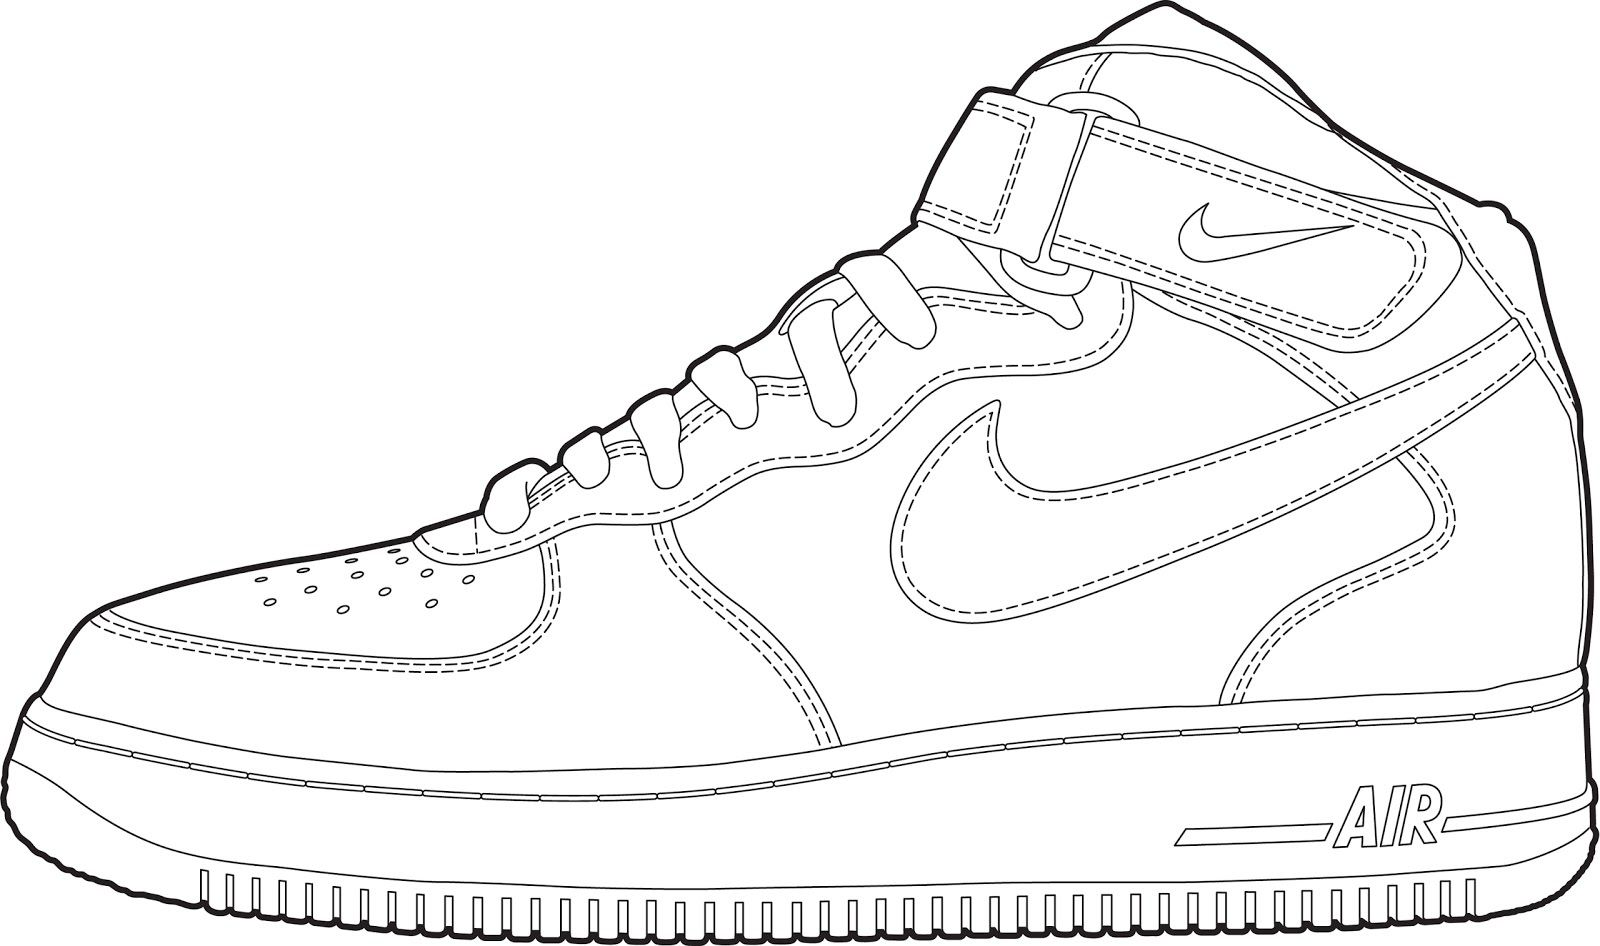 Air Force One Coloring Sheet 2018 Open Coloring Pages Sneakers Sketch Sneakers Drawing Pictures Of Shoes